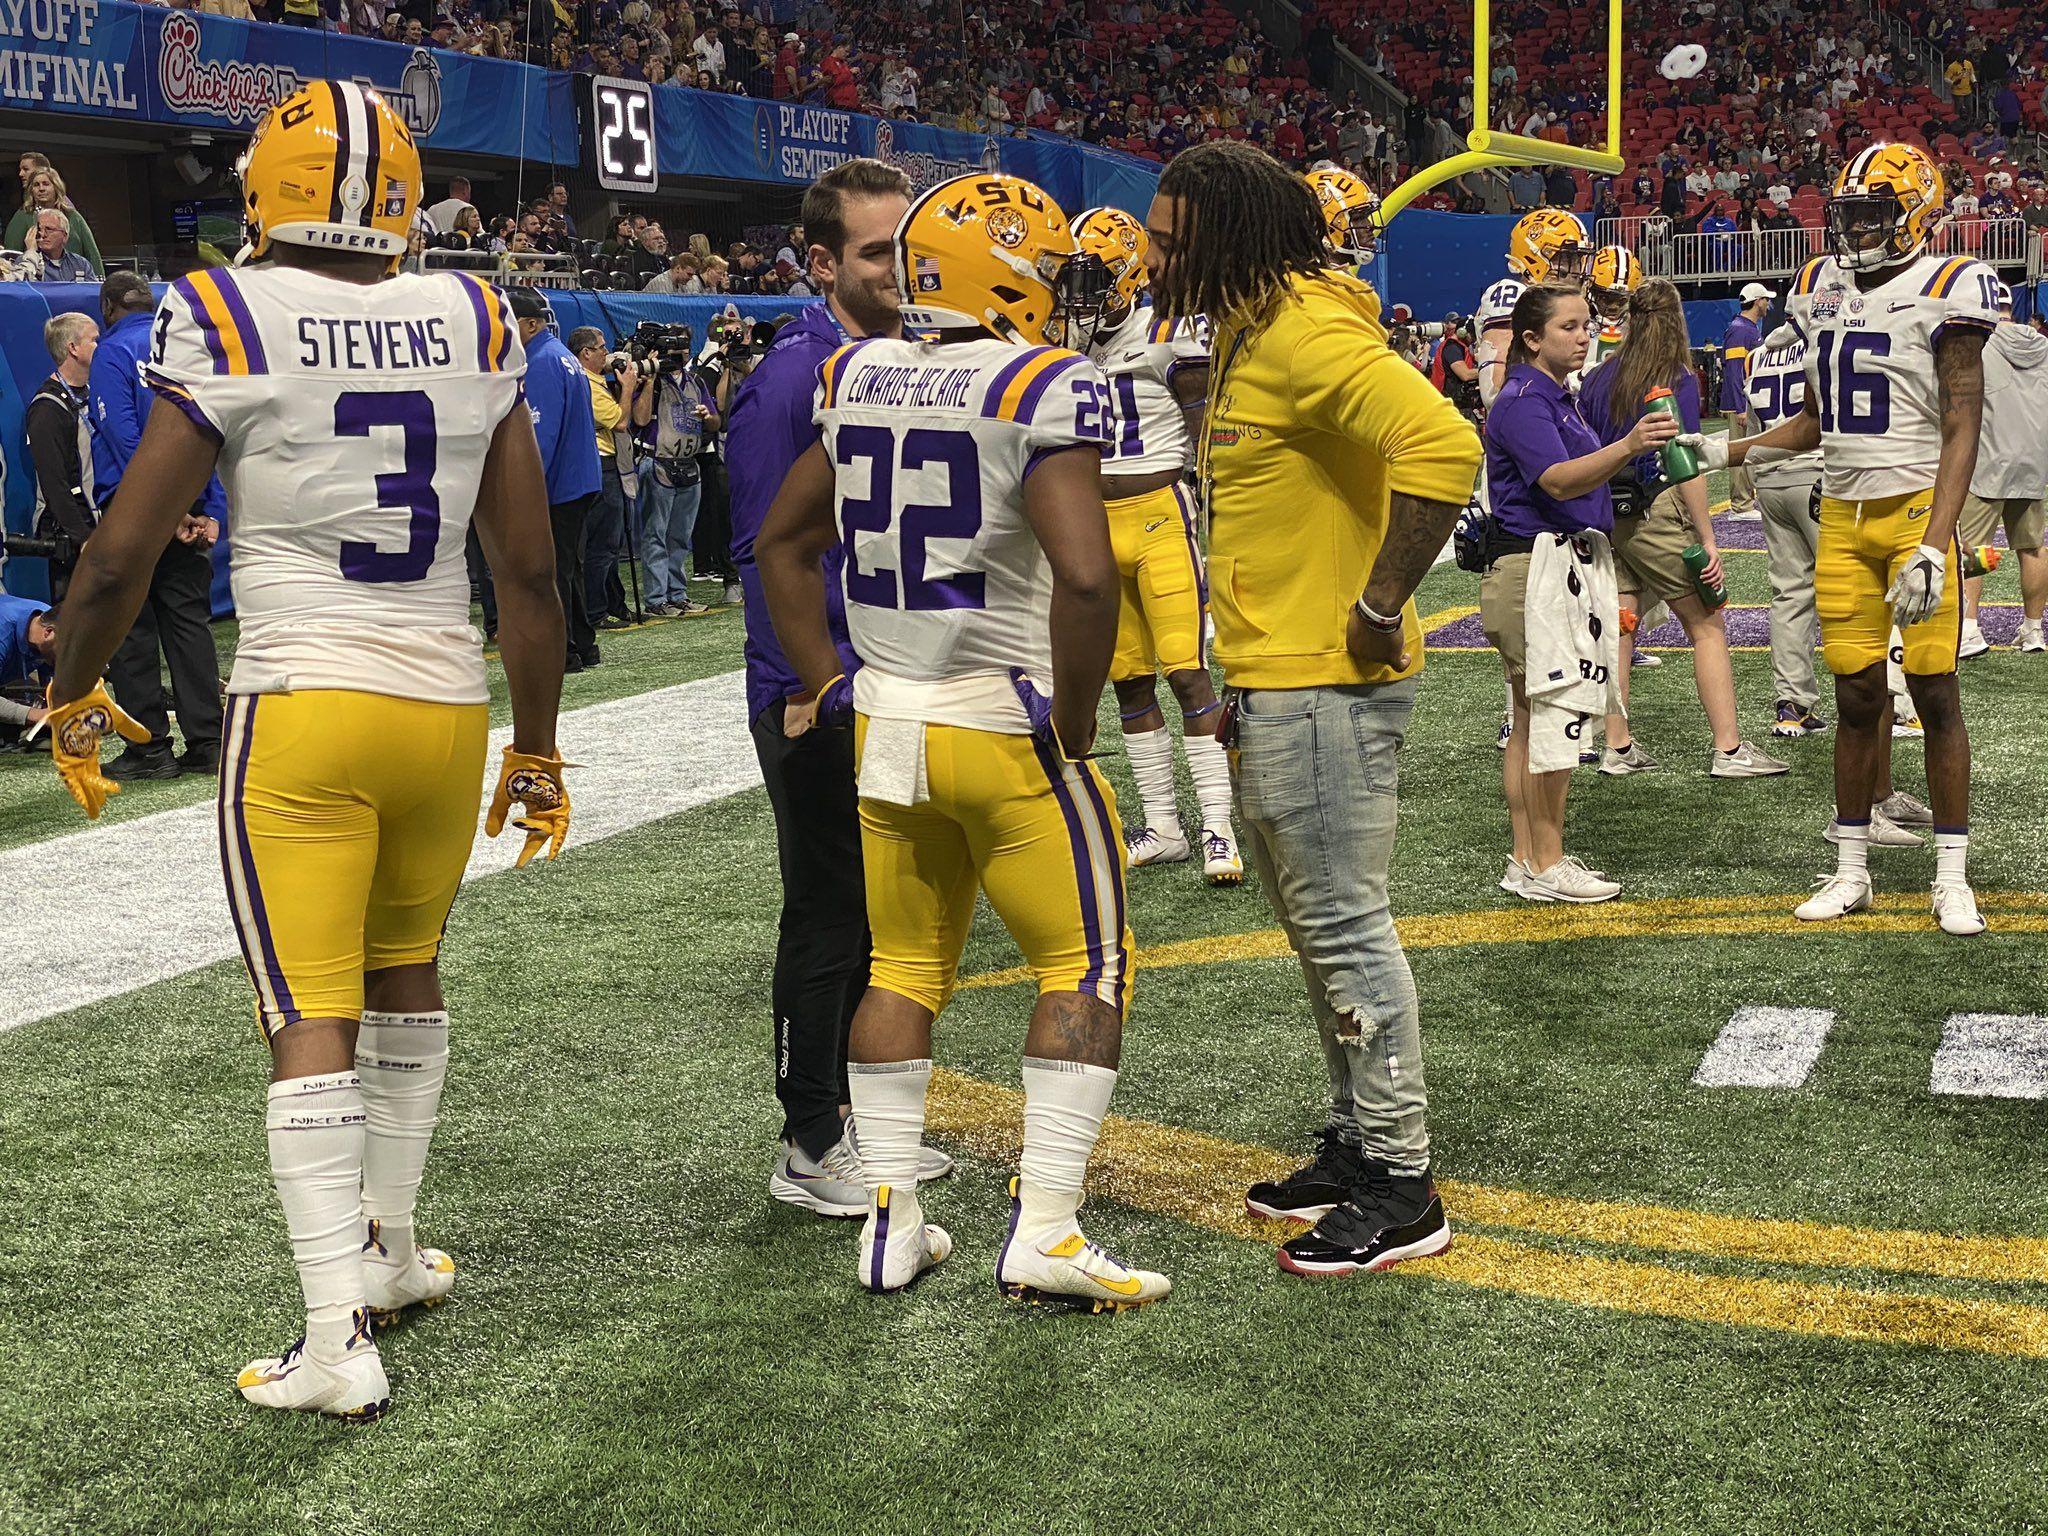 Hester & Guice & Clyde before 2019 OU Playoff Game